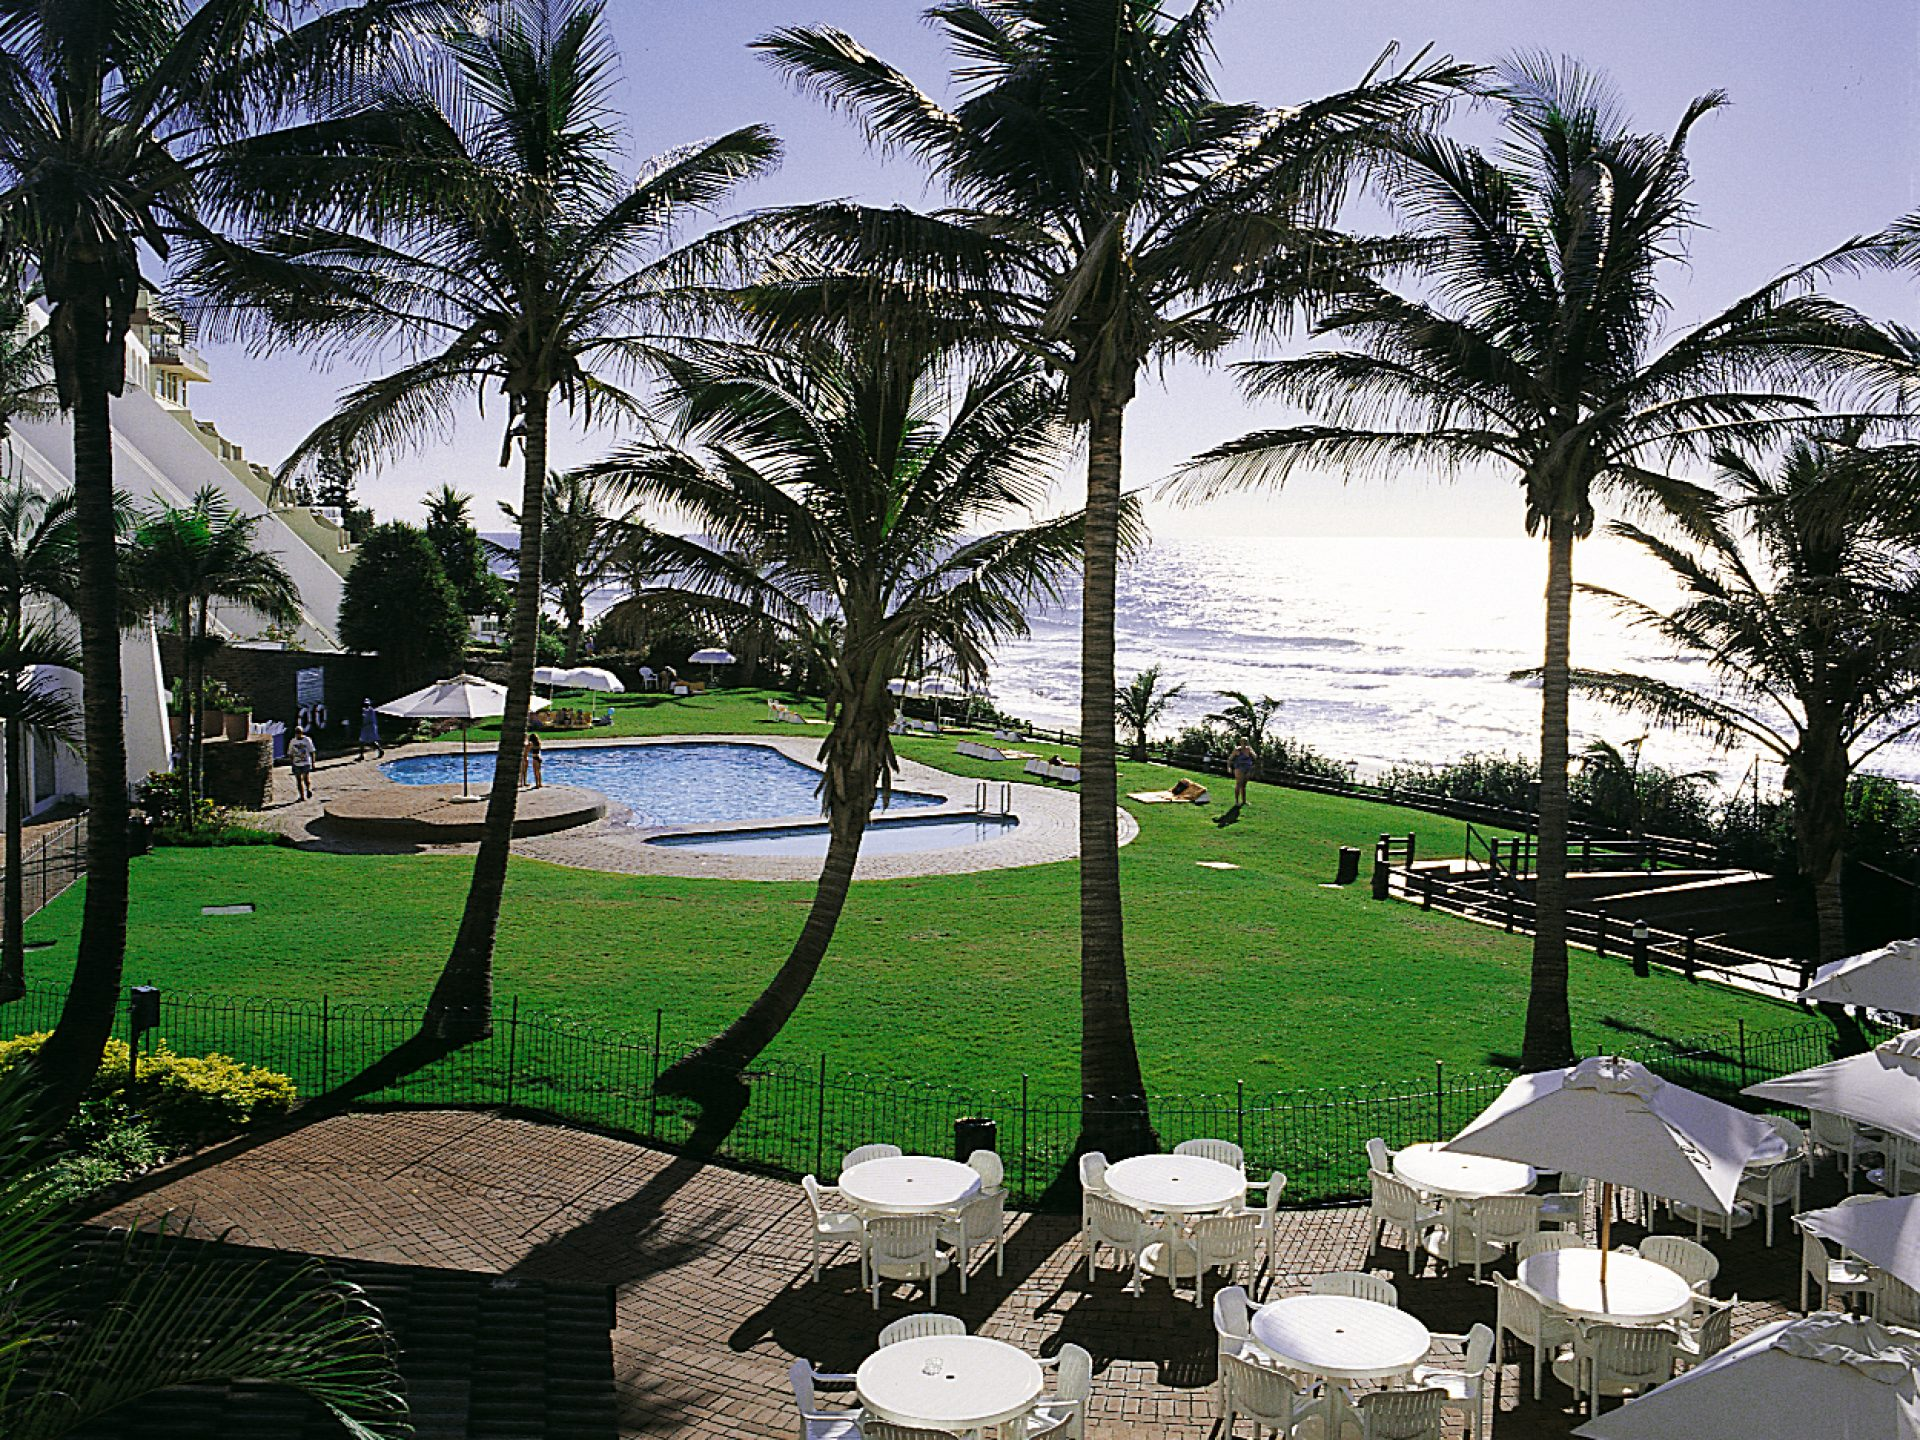 uMhlanga Sands Resort pool area and ocean view